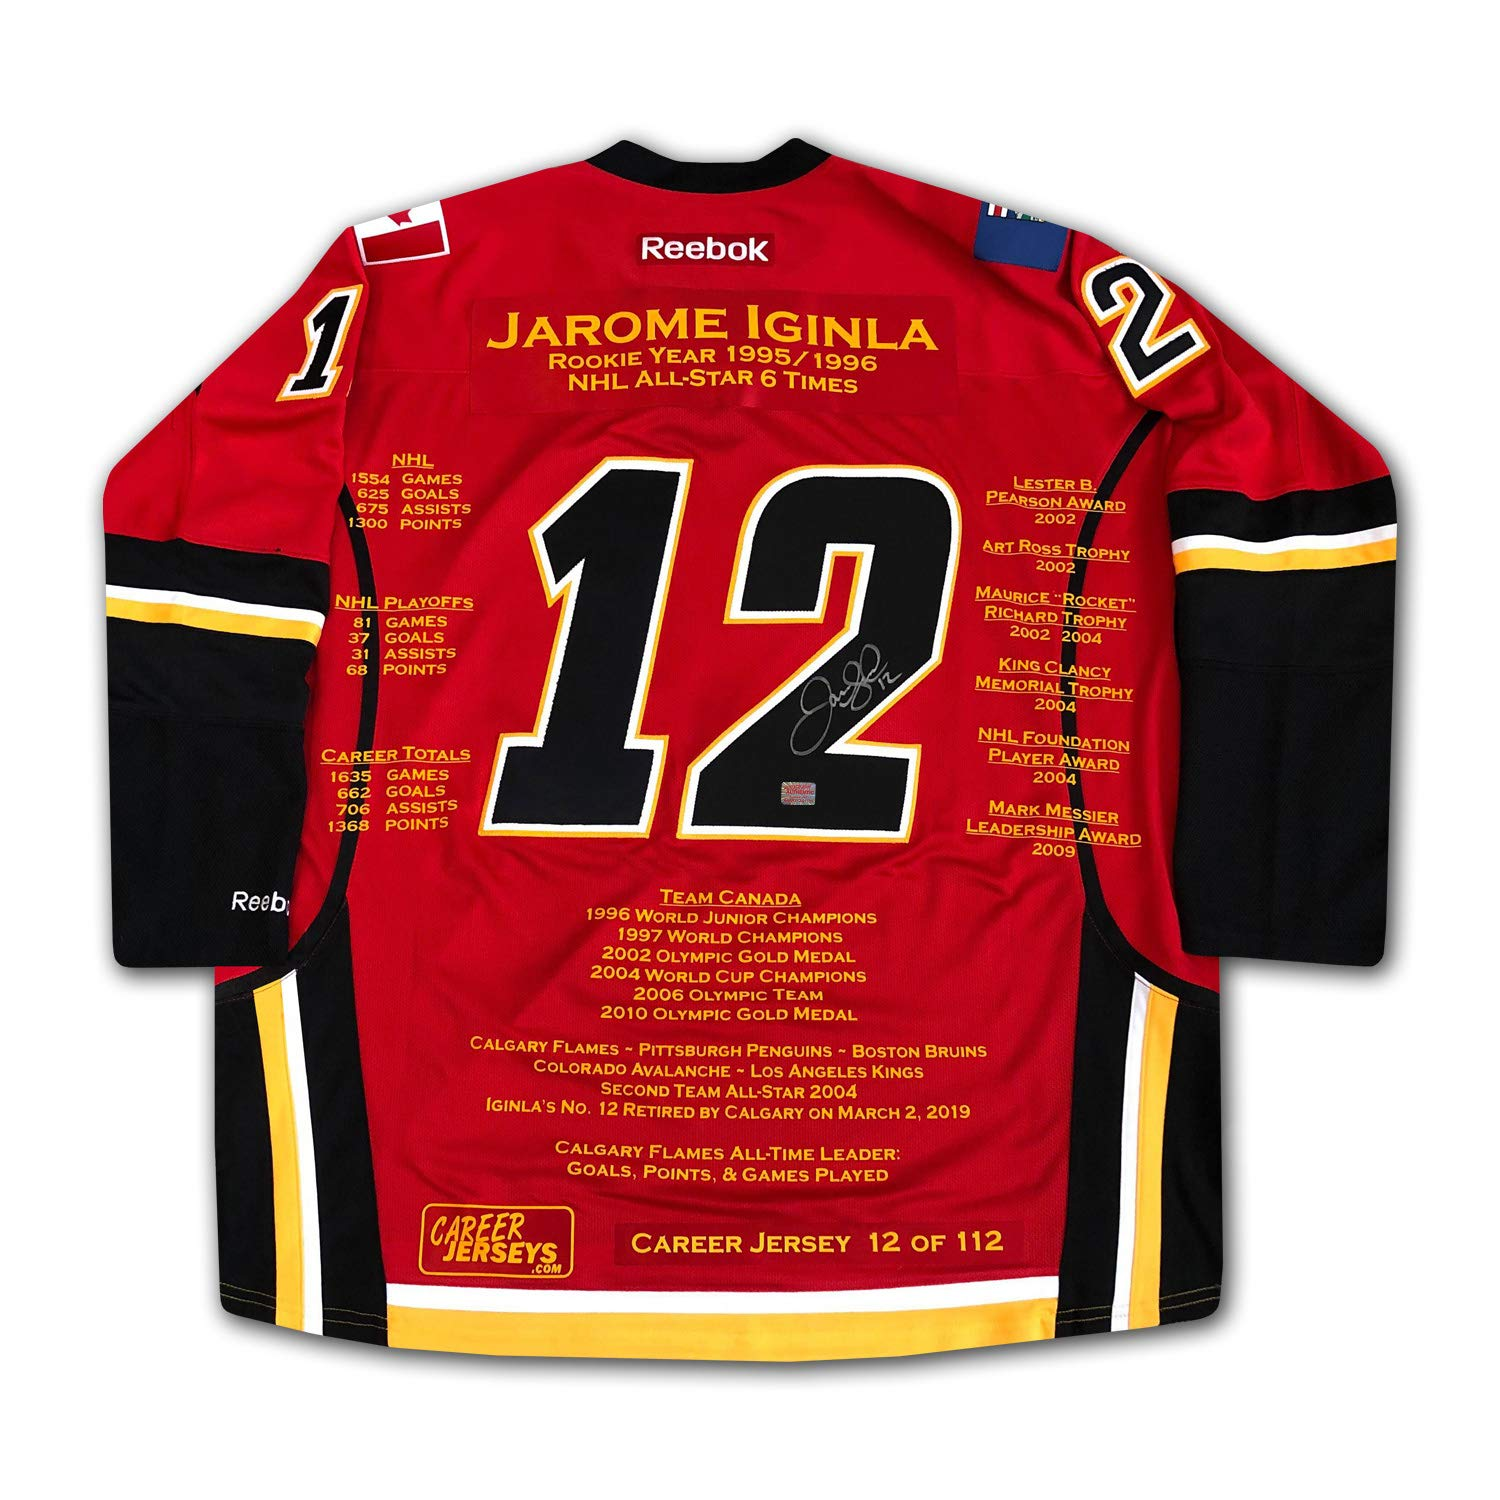 new product 56aef 58949 Jarome Iginla Career Jersey #12 of 112 - Autographed ...